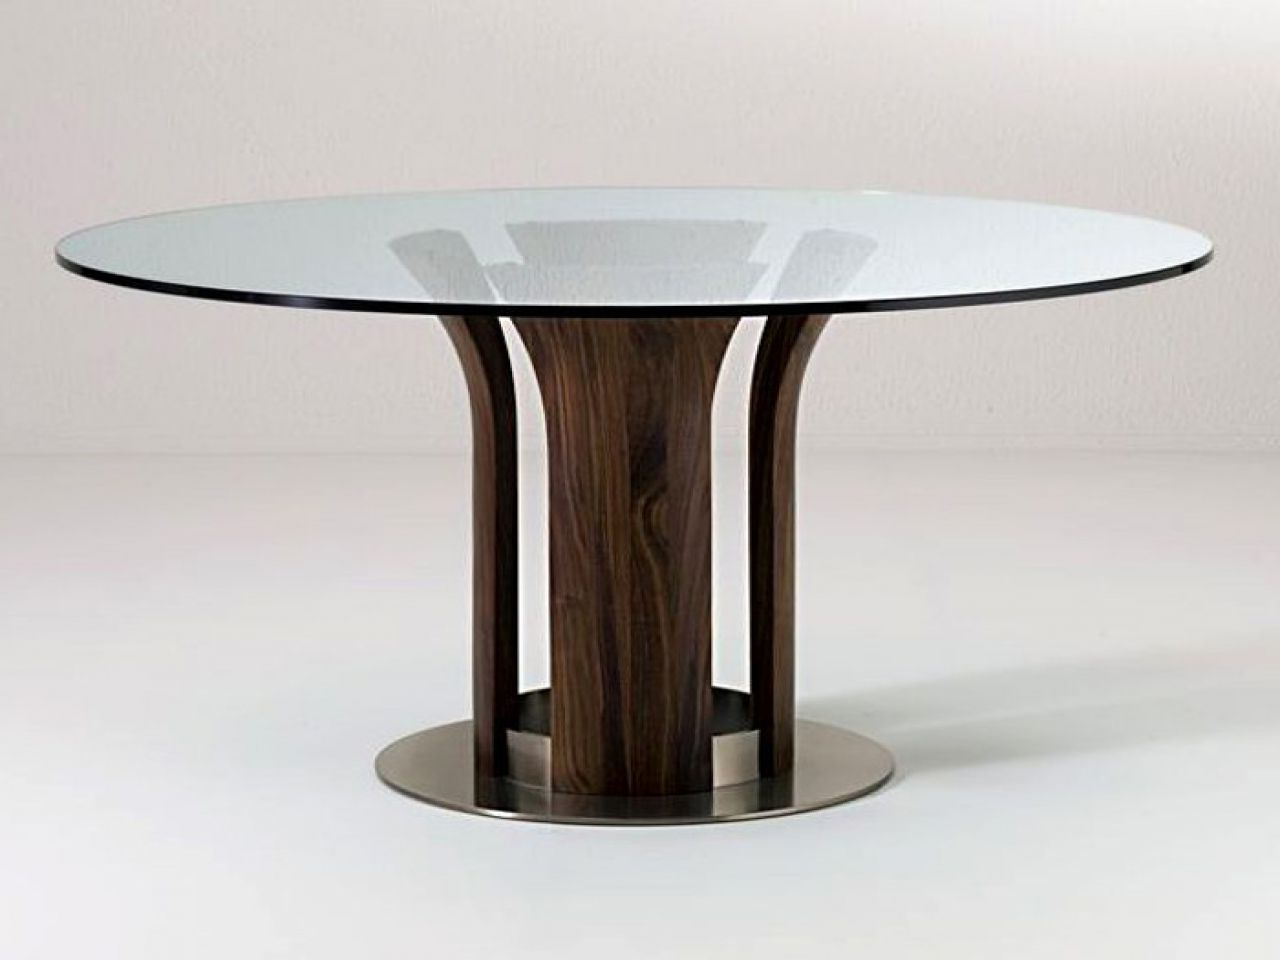 Well Known Glass Top Dining Room Sets Round Table Modern With Wooden In Modern Round Glass Top Dining Tables (View 15 of 30)